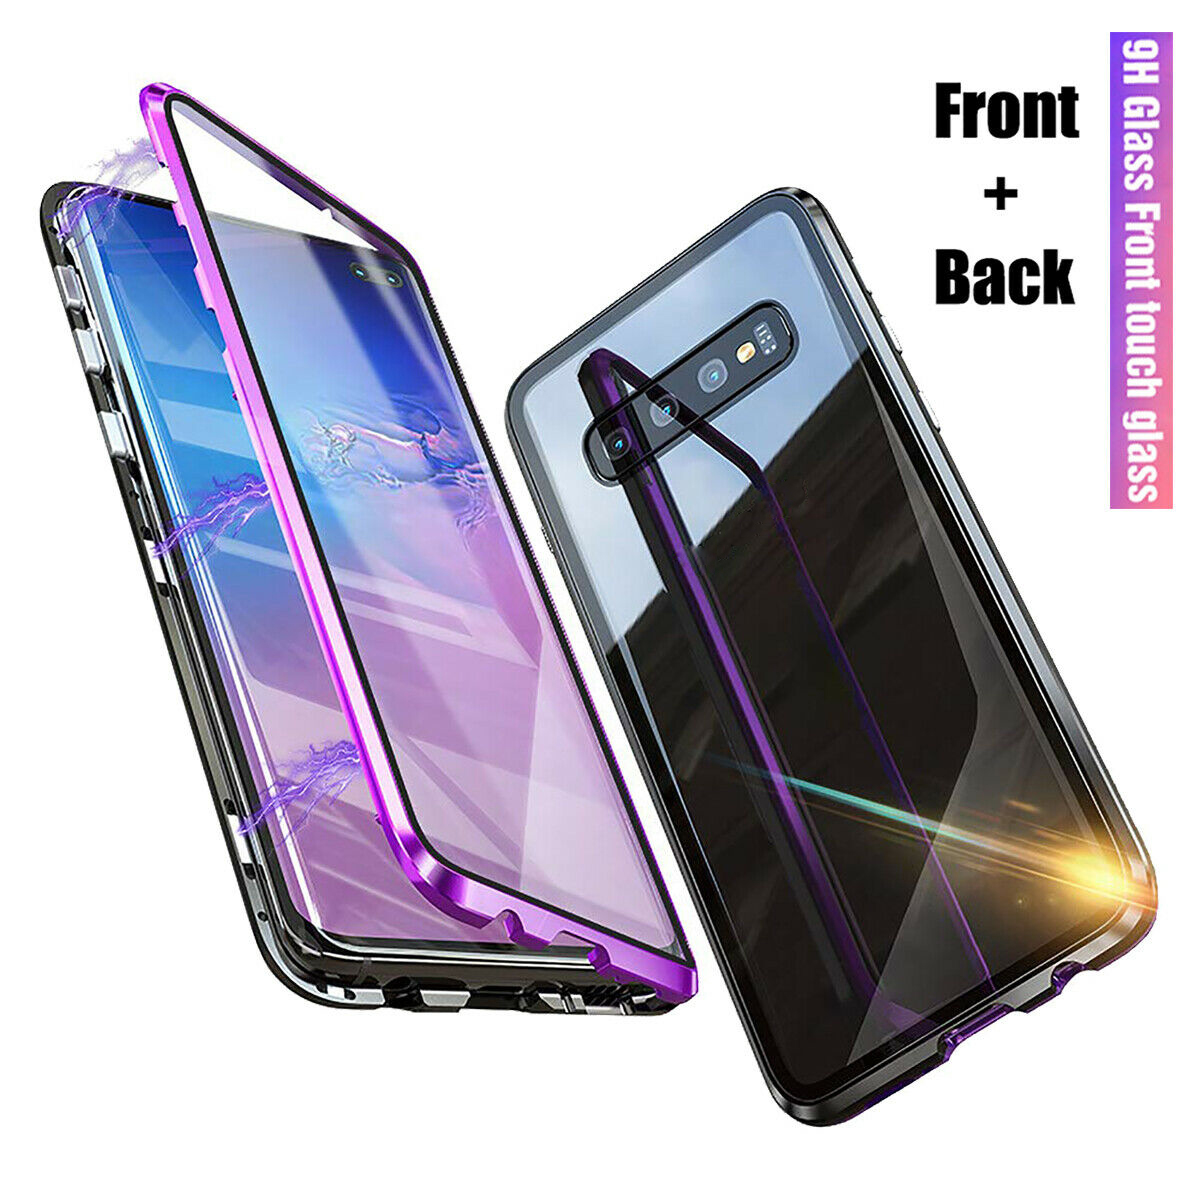 New Upgraded 360 Two Side Front Glass +back Glass Magnetic